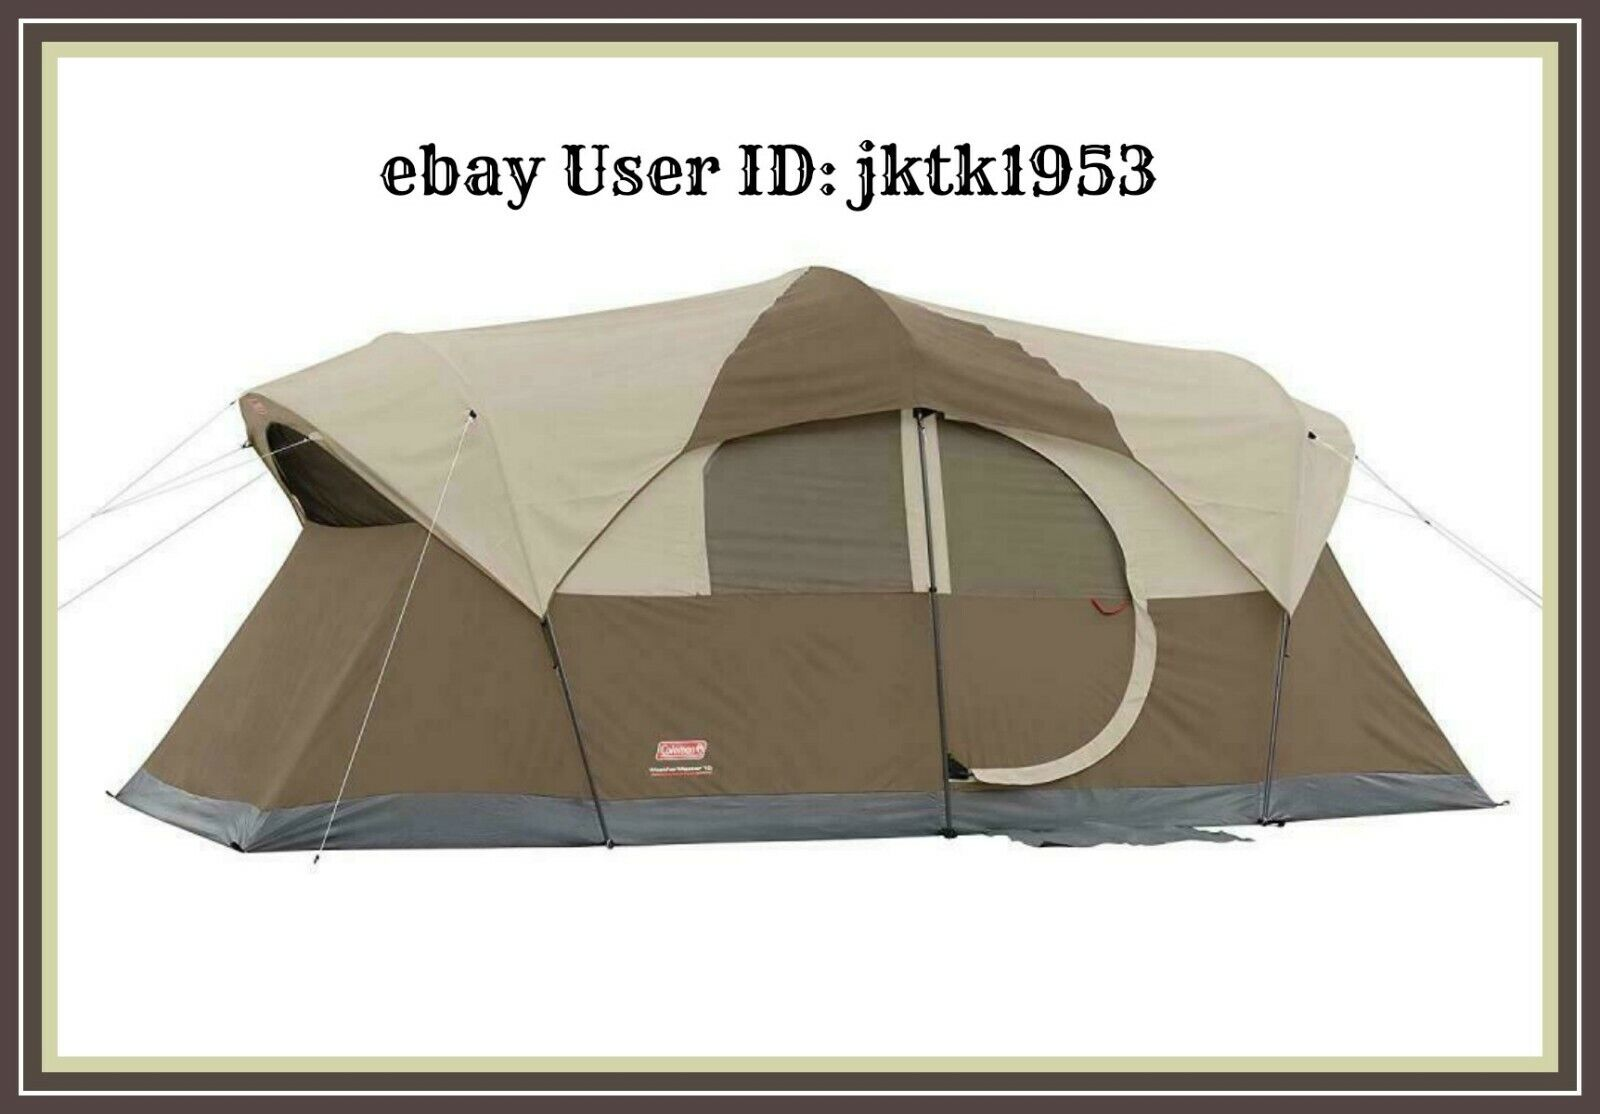 Coleman WeatherMaster 10Person Tent 17' X 9' w 68 Center with a Room Divider